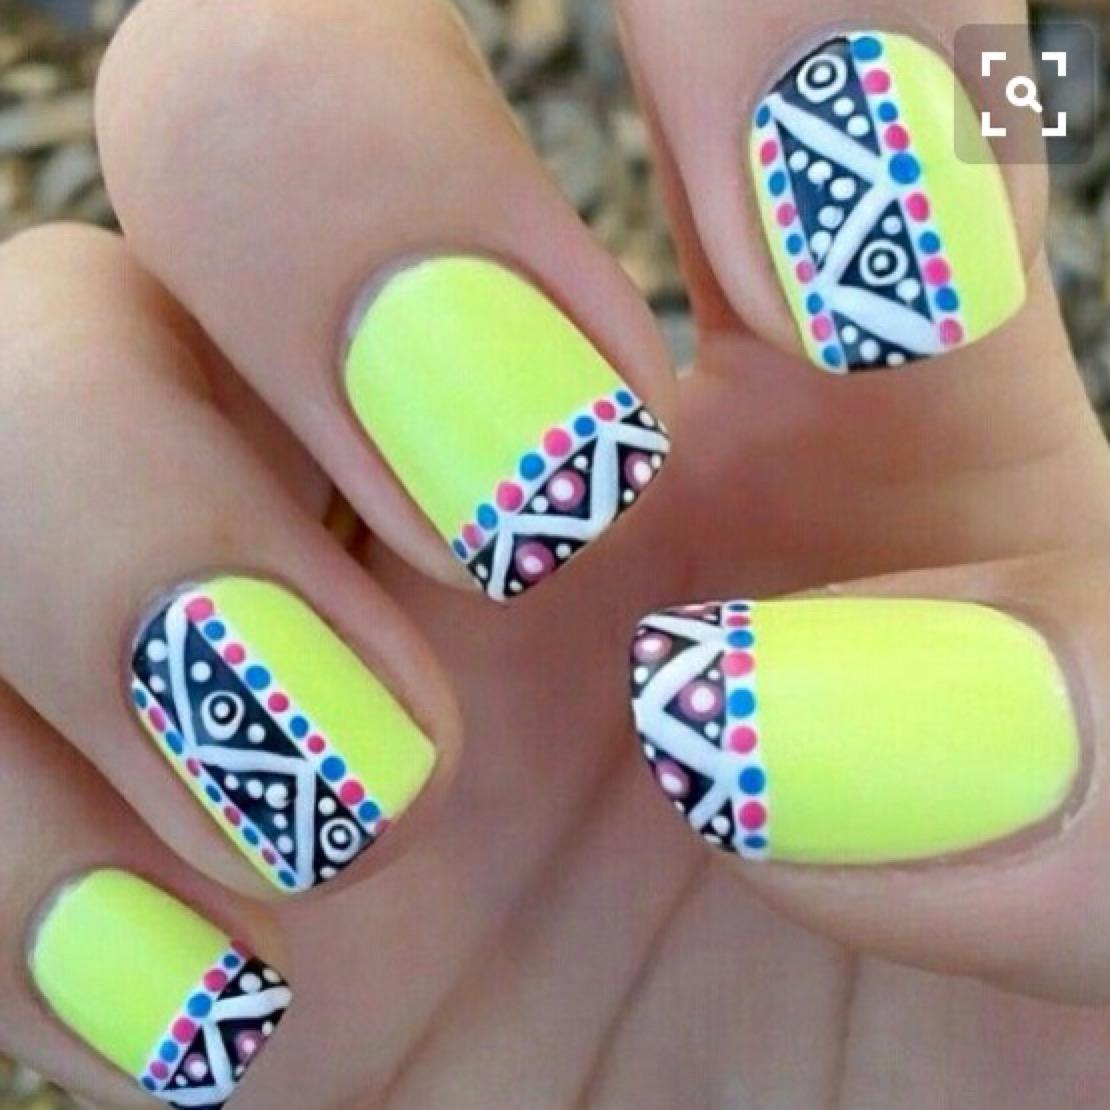 Neon Yellow Nails With Tribal Design Nail Art